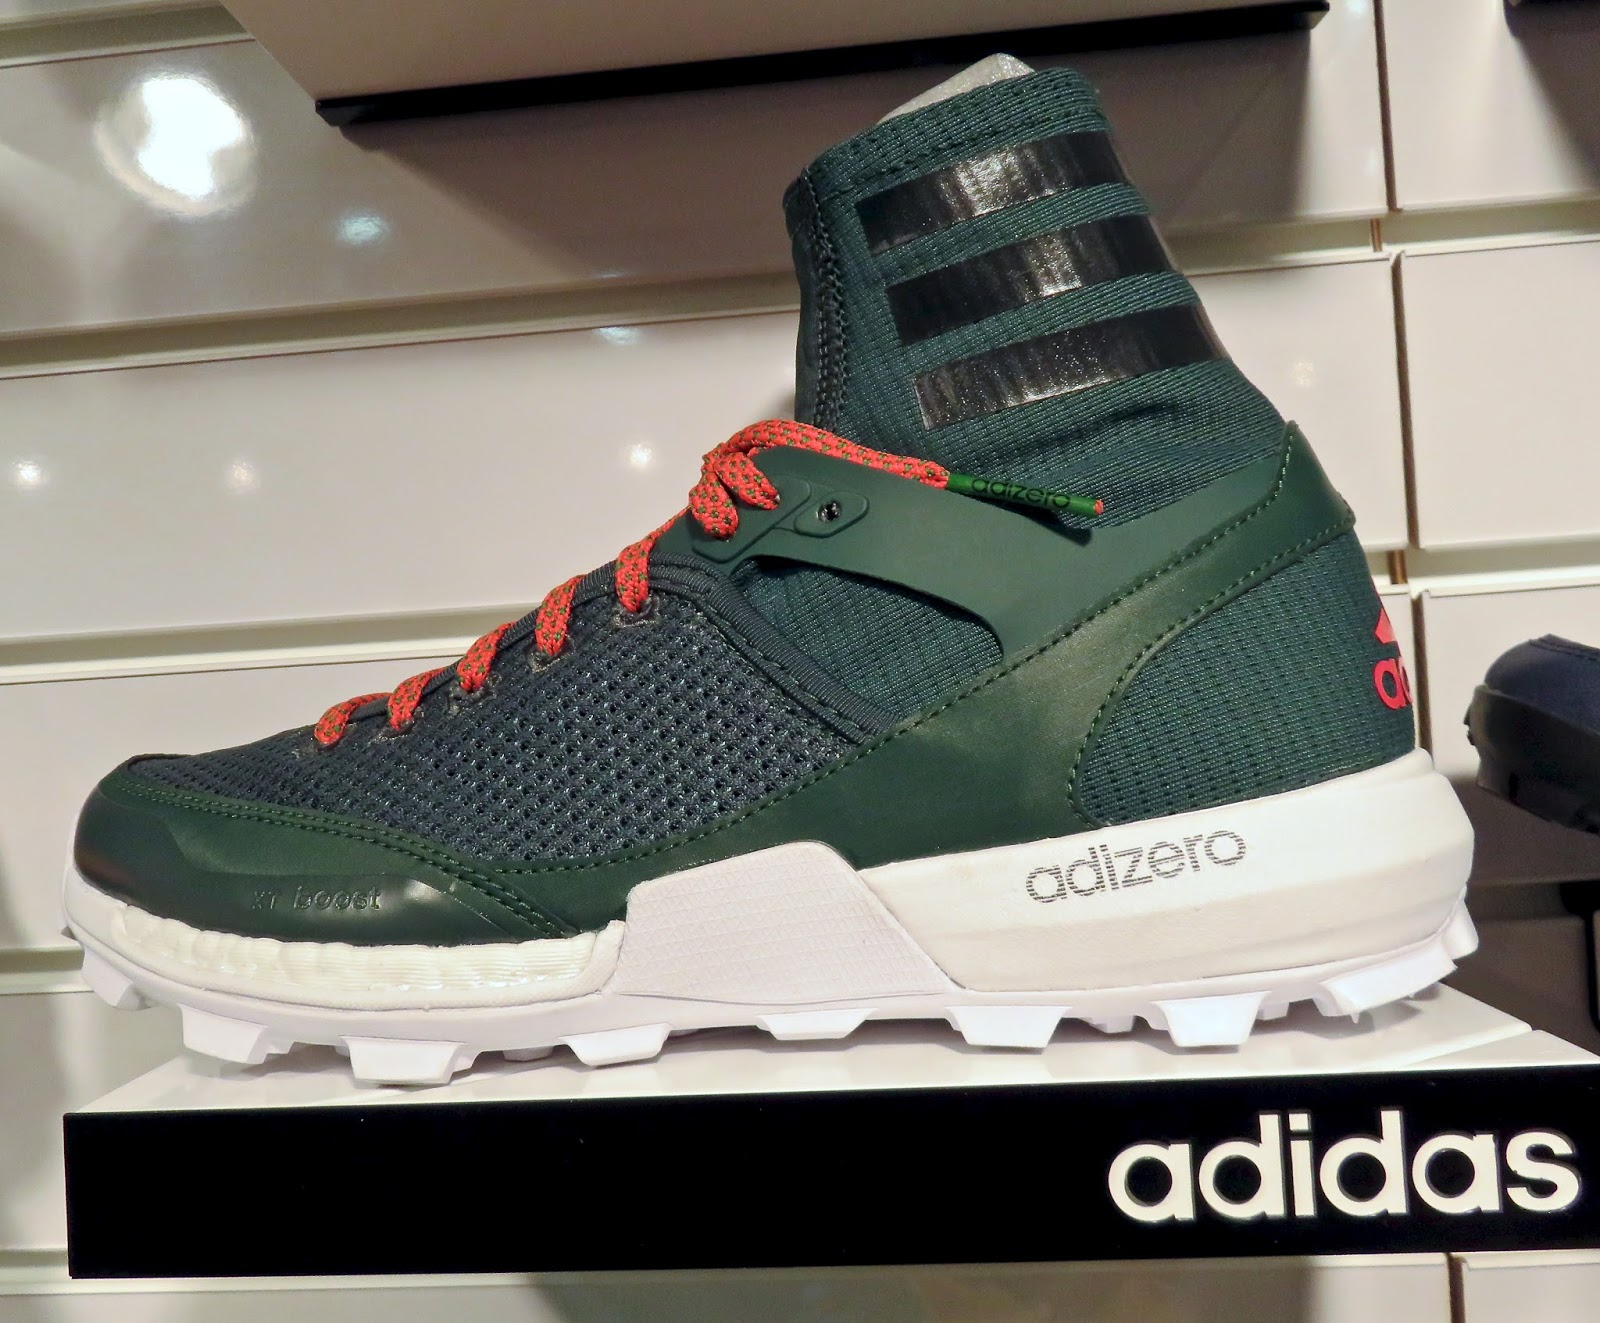 ADIDAS OUTDOORS -7 Footwear Styles- Fresh Updates: Trails+Street: Spring'16